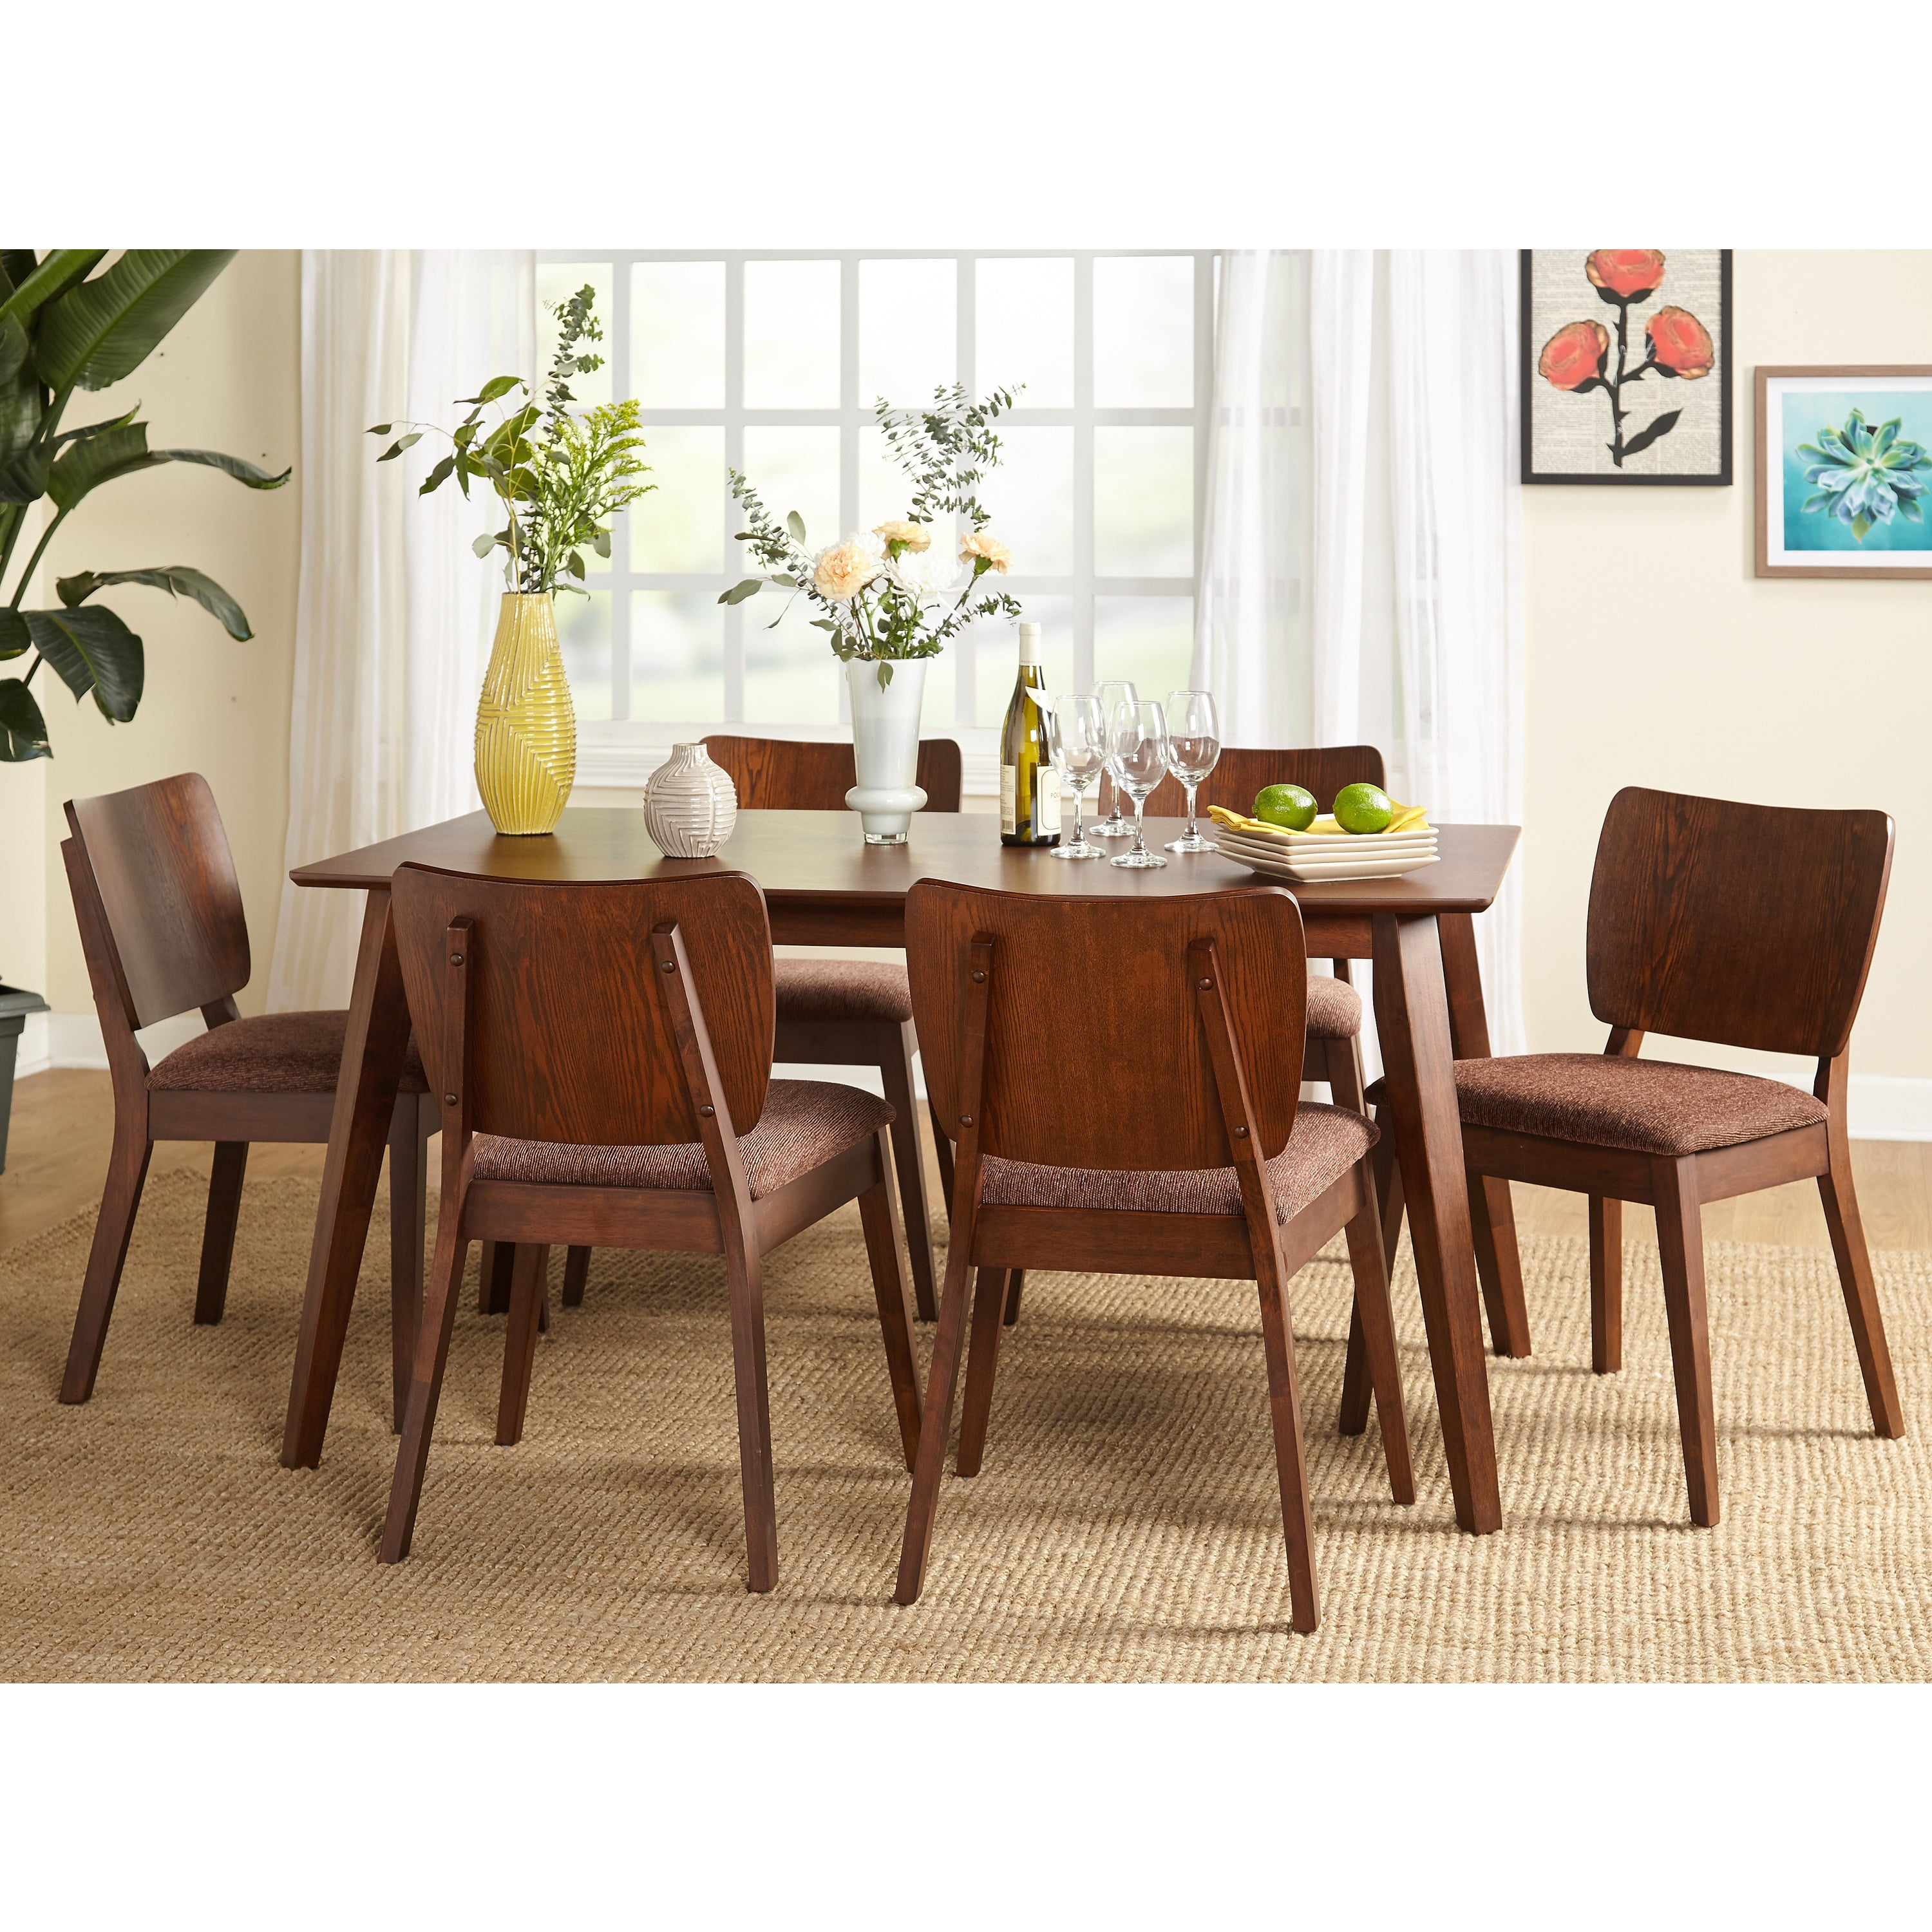 Buy 5 Piece Sets, Wood Kitchen & Dining Room Sets Online At Pertaining To Most Popular Goodman 5 Piece Solid Wood Dining Sets (Set Of 5) (Image 3 of 20)